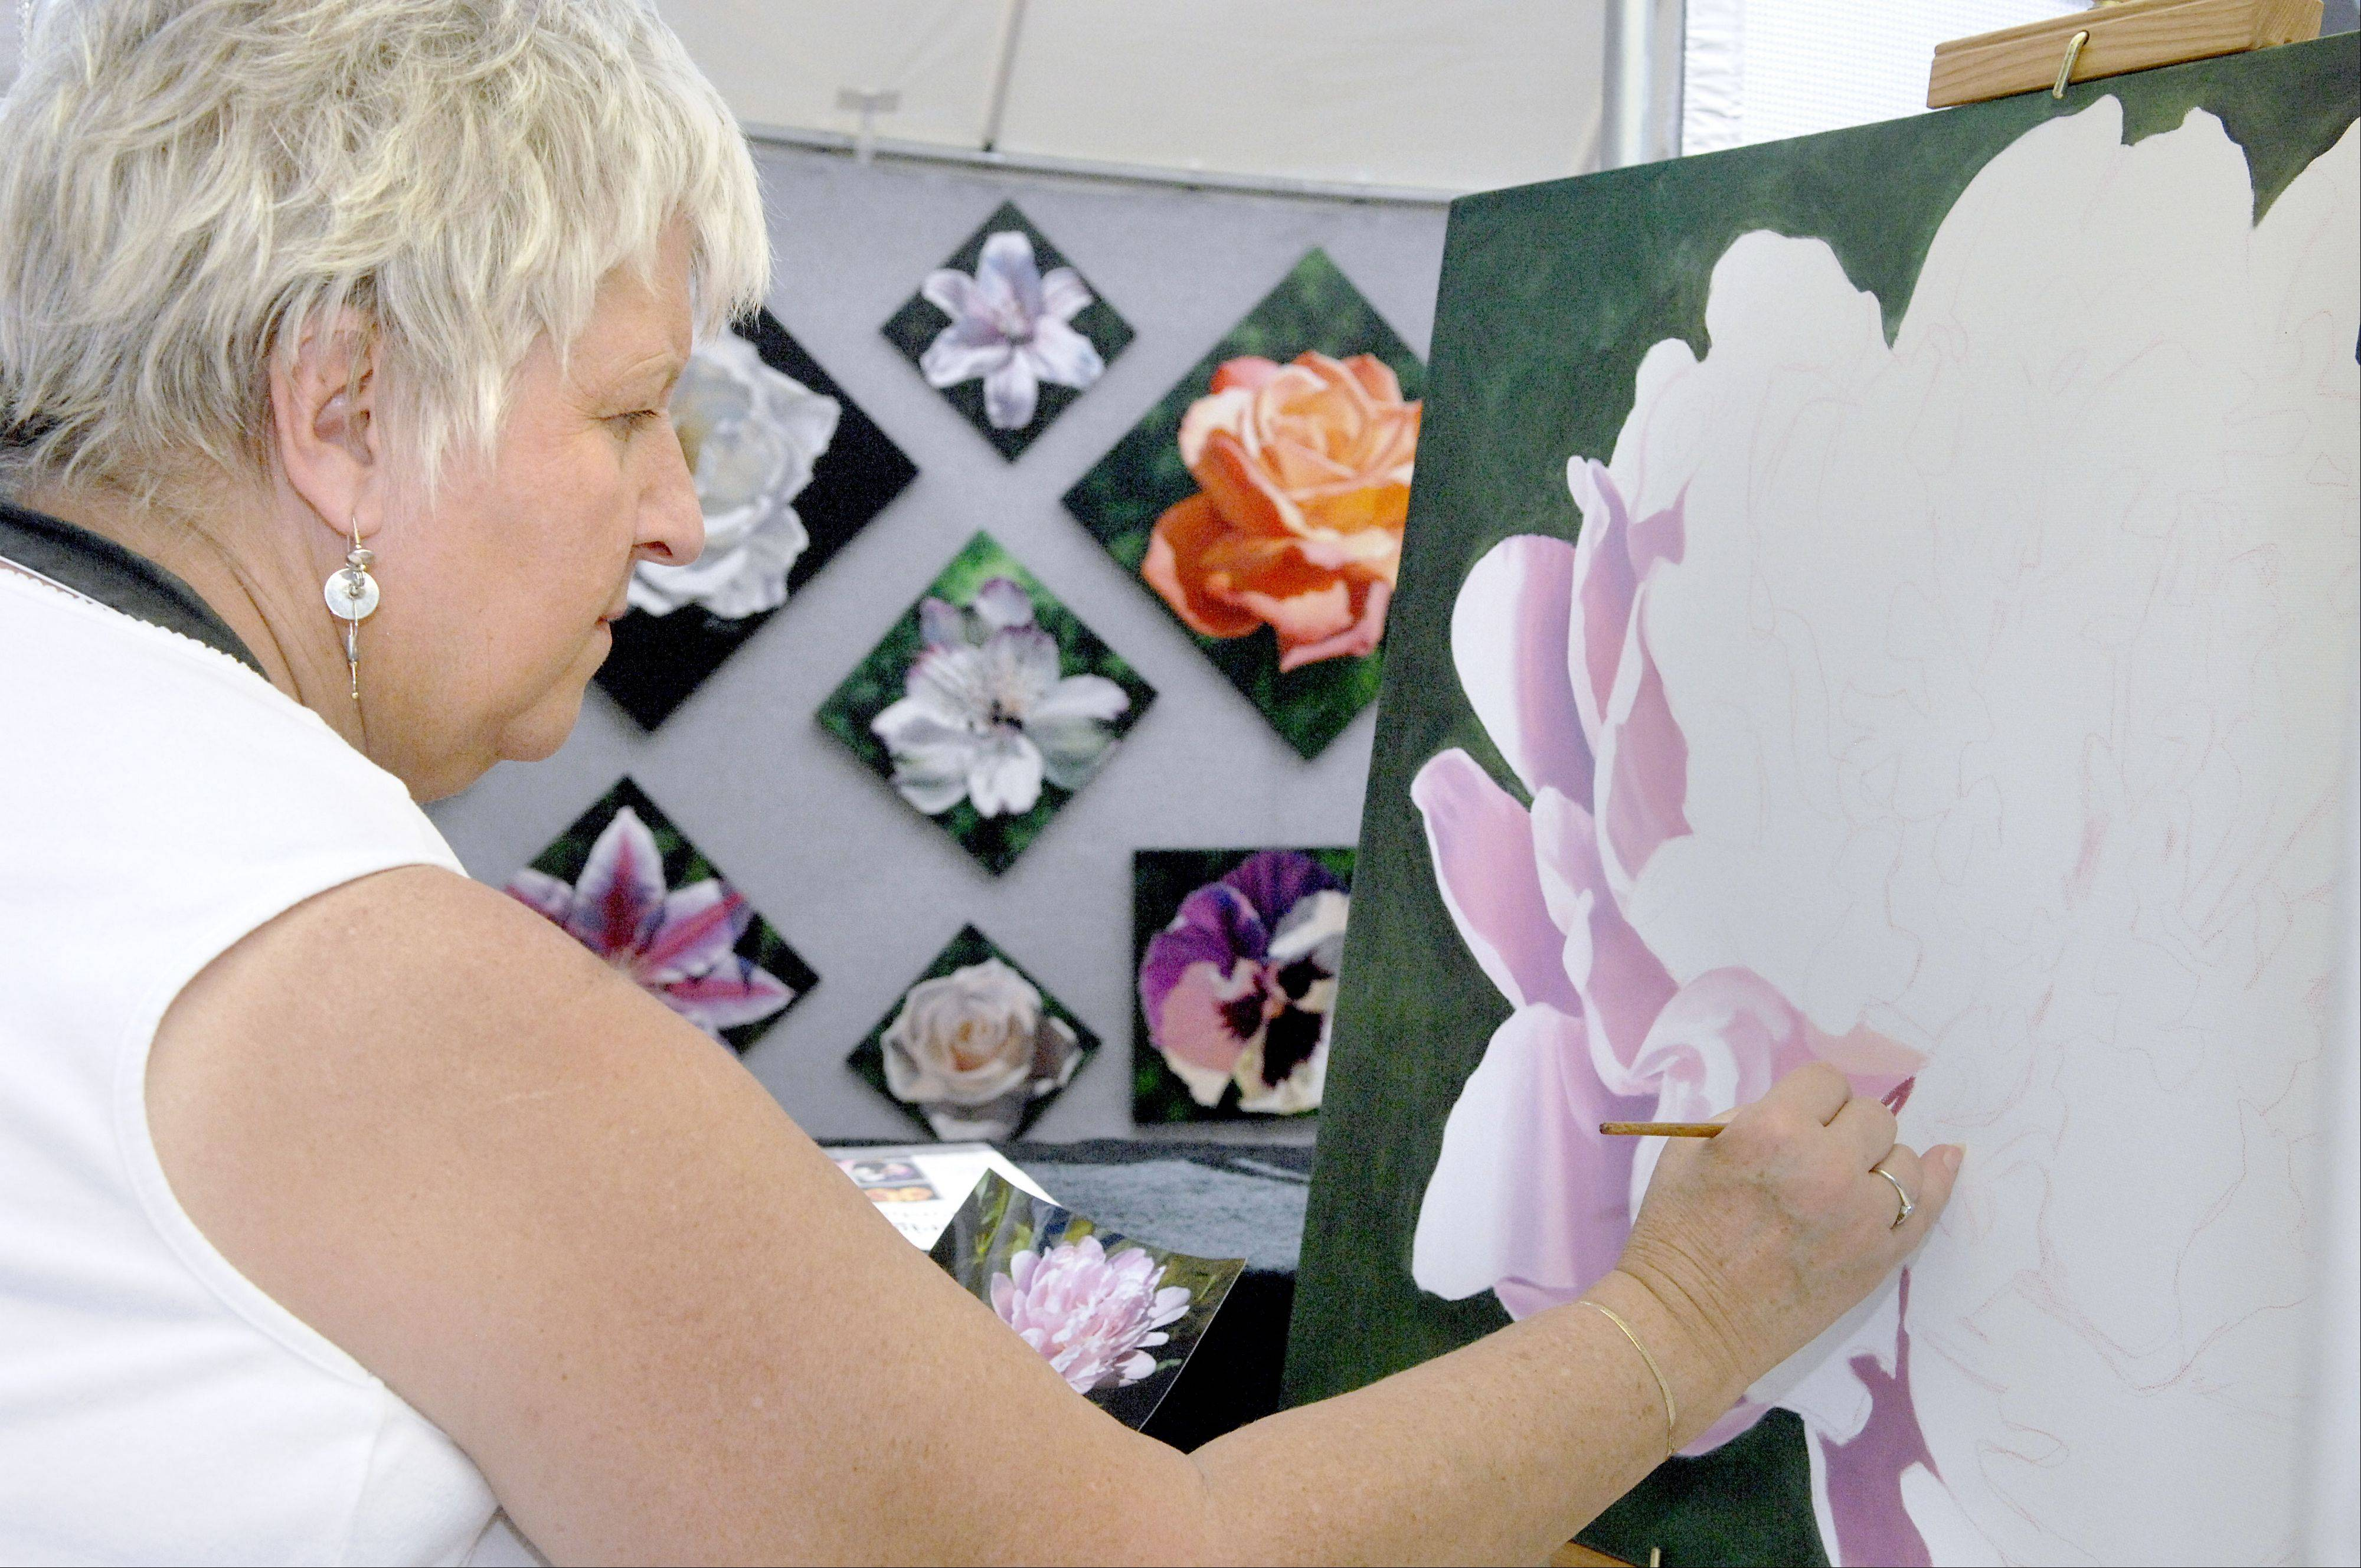 Marge Hall of Winfield paints a new oil piece of a peony at the Geneva Arts Fair on Third Street on Saturday, July 28. Hall has been doing the Geneva show for several years.